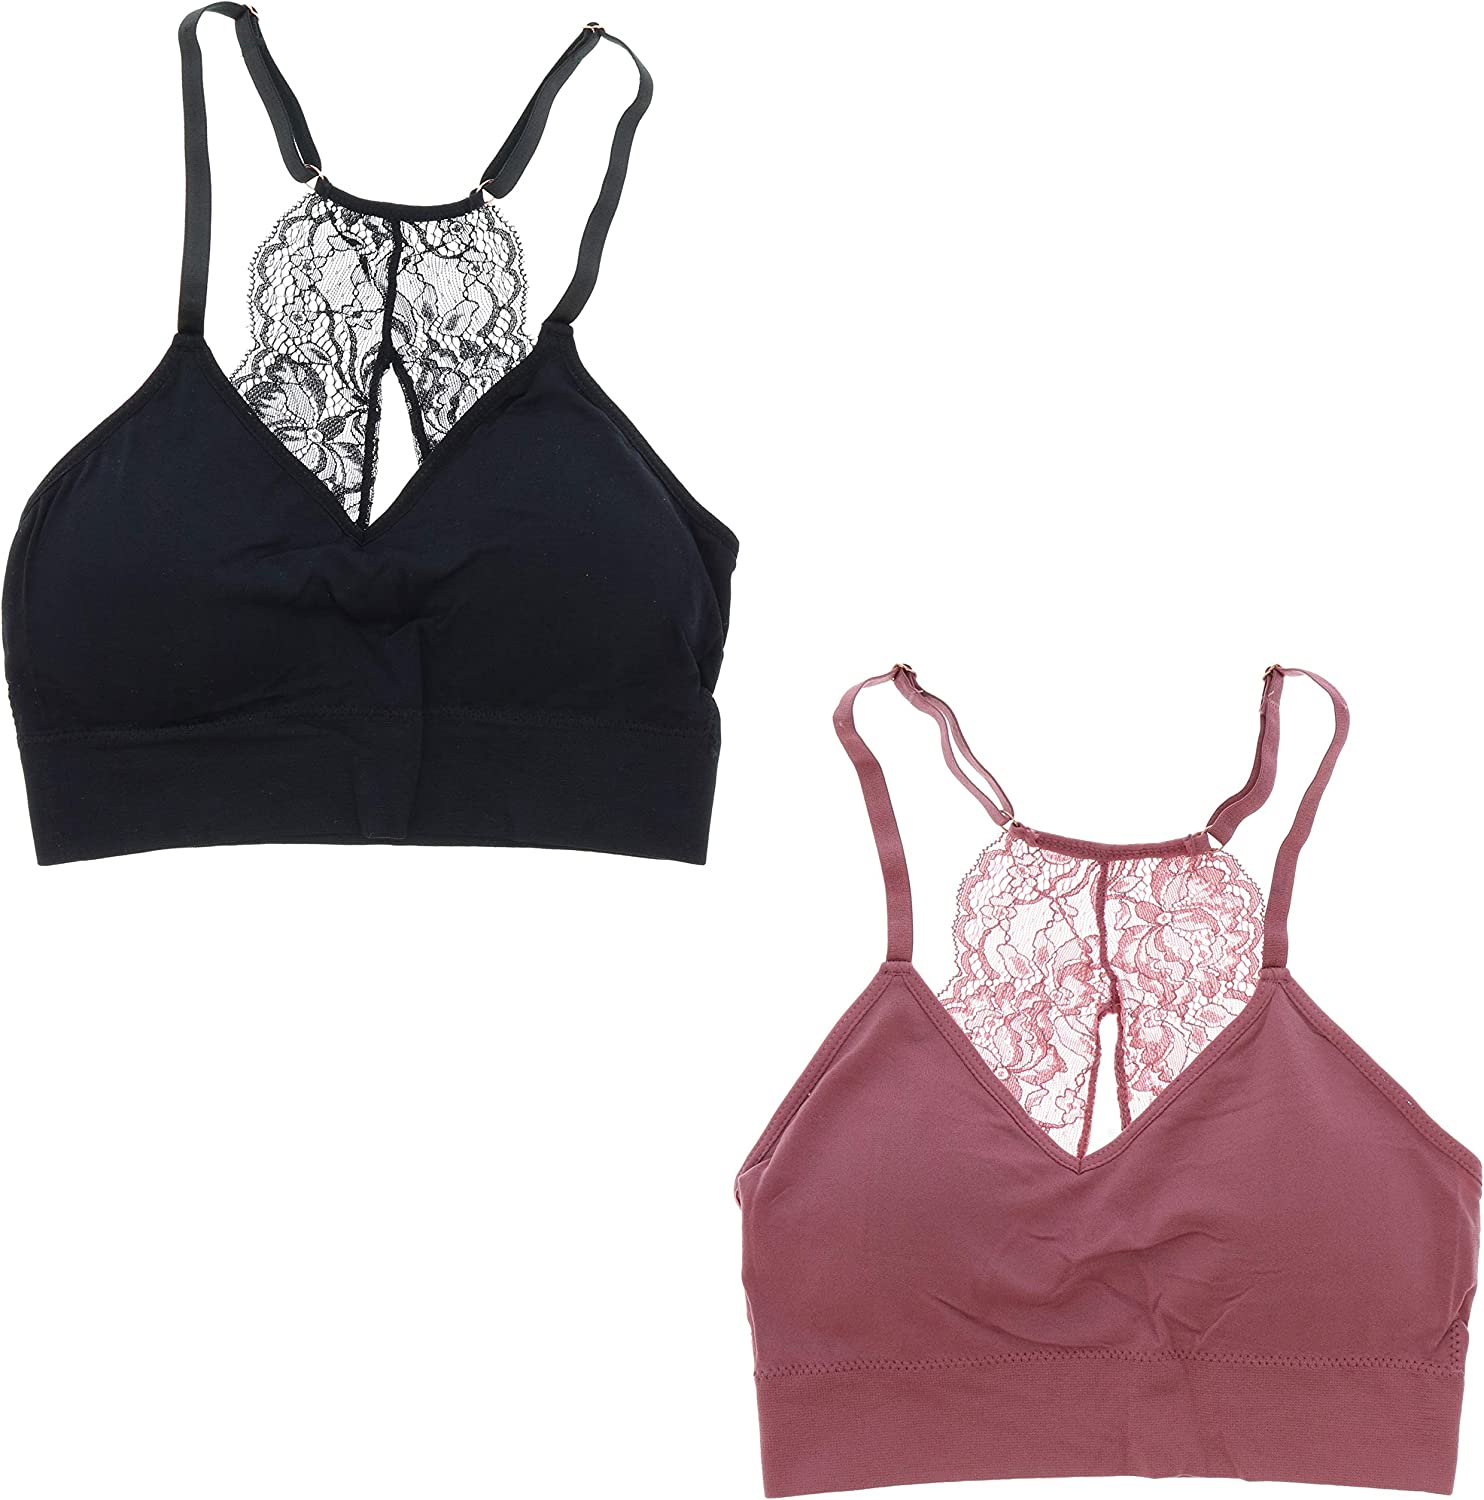 Marilyn Monroe Intimates Women S Sexy Bralette With Lacey Racer Back 2 Bras Small Black Mauve At Amazon Women S Clothing Store